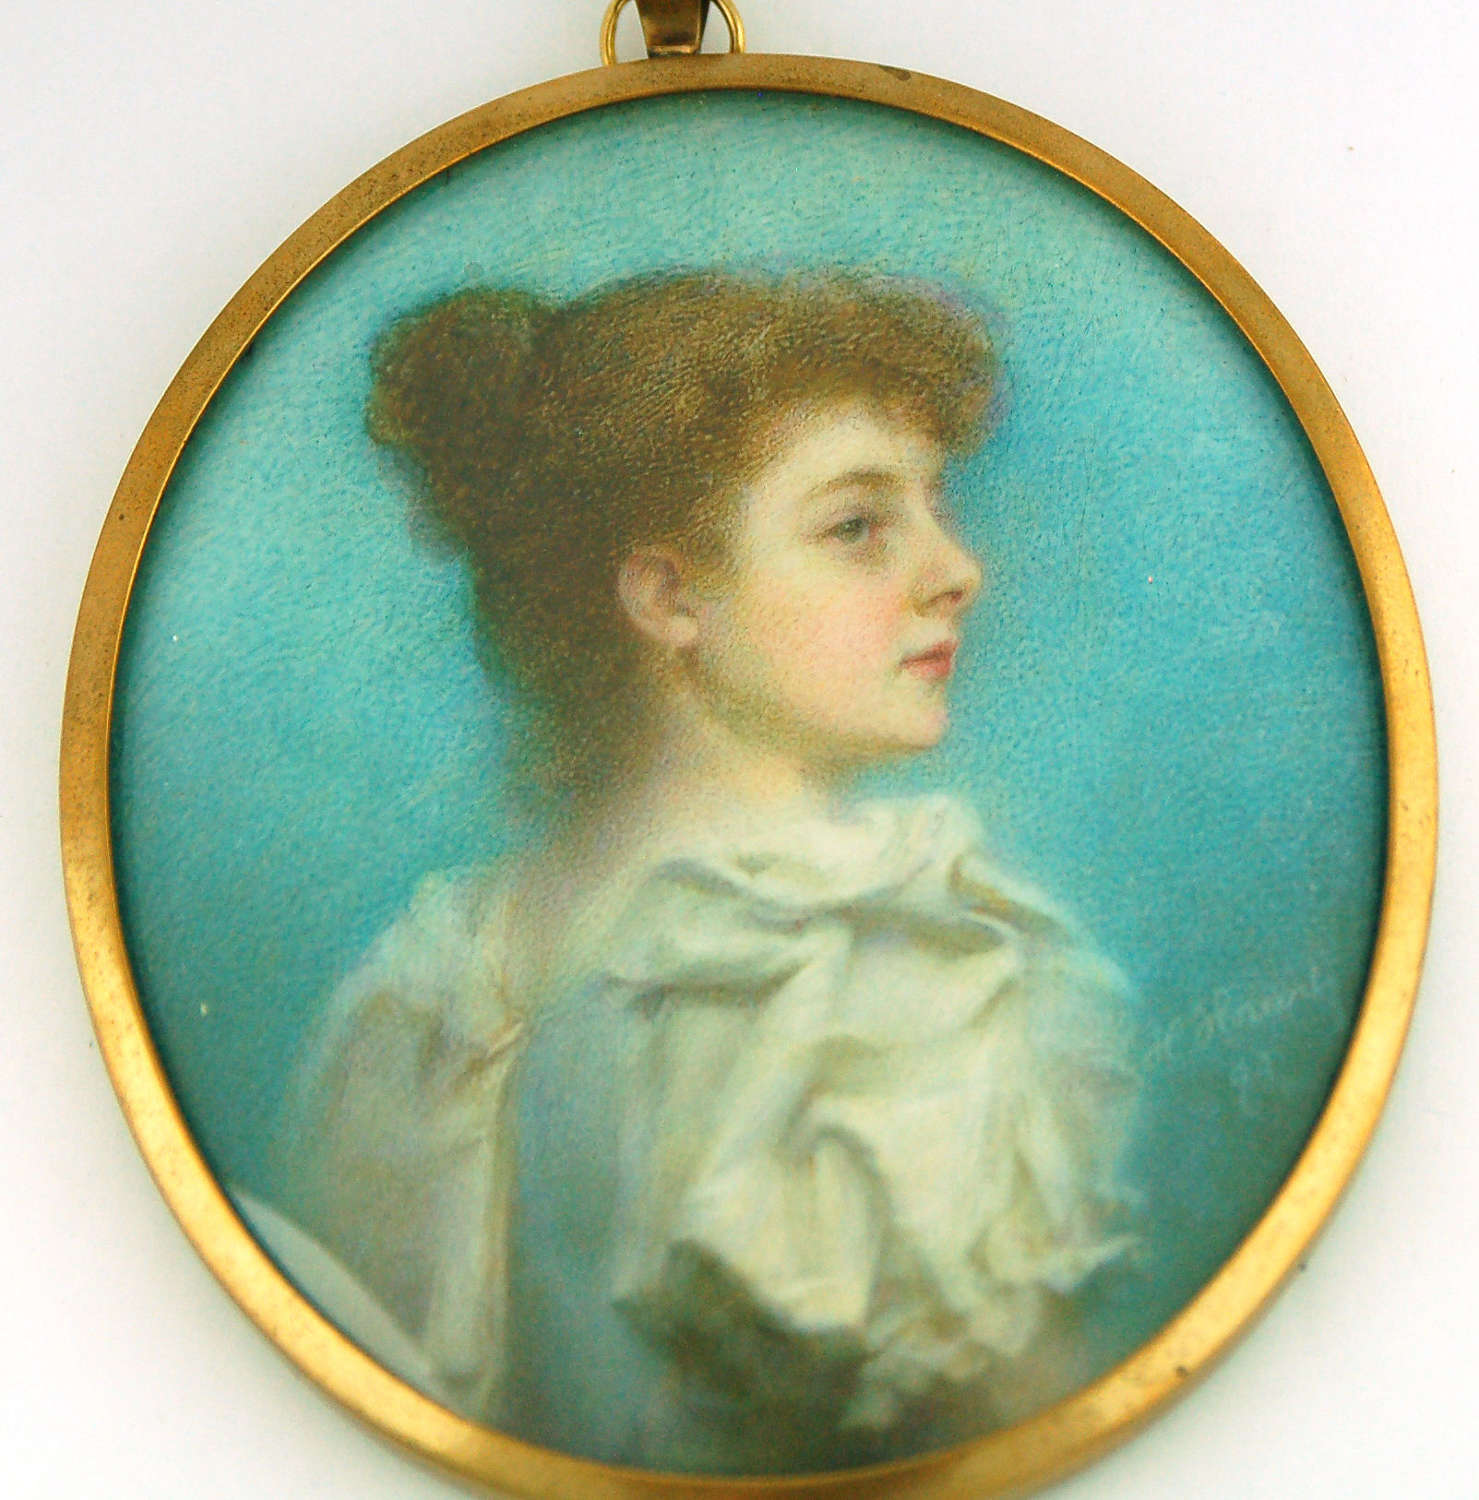 Miniature of lady signed and dated 1894